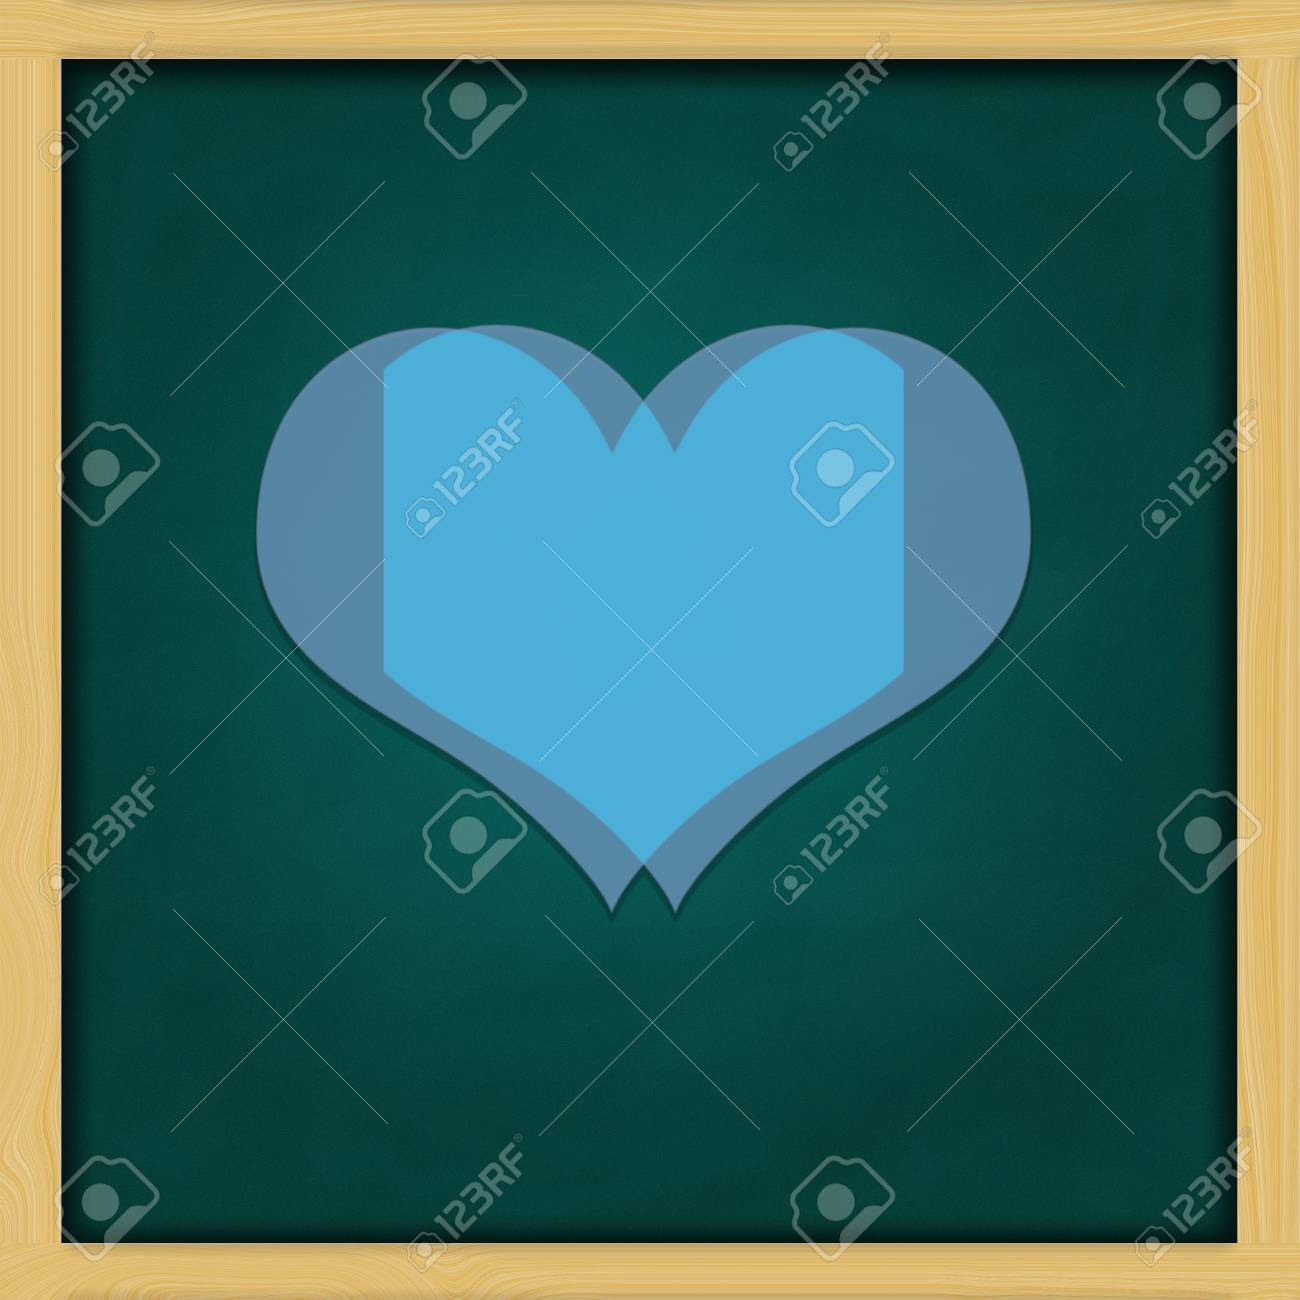 Love Background and green chalkboard frame   conceptual Stock Photo - 13964436